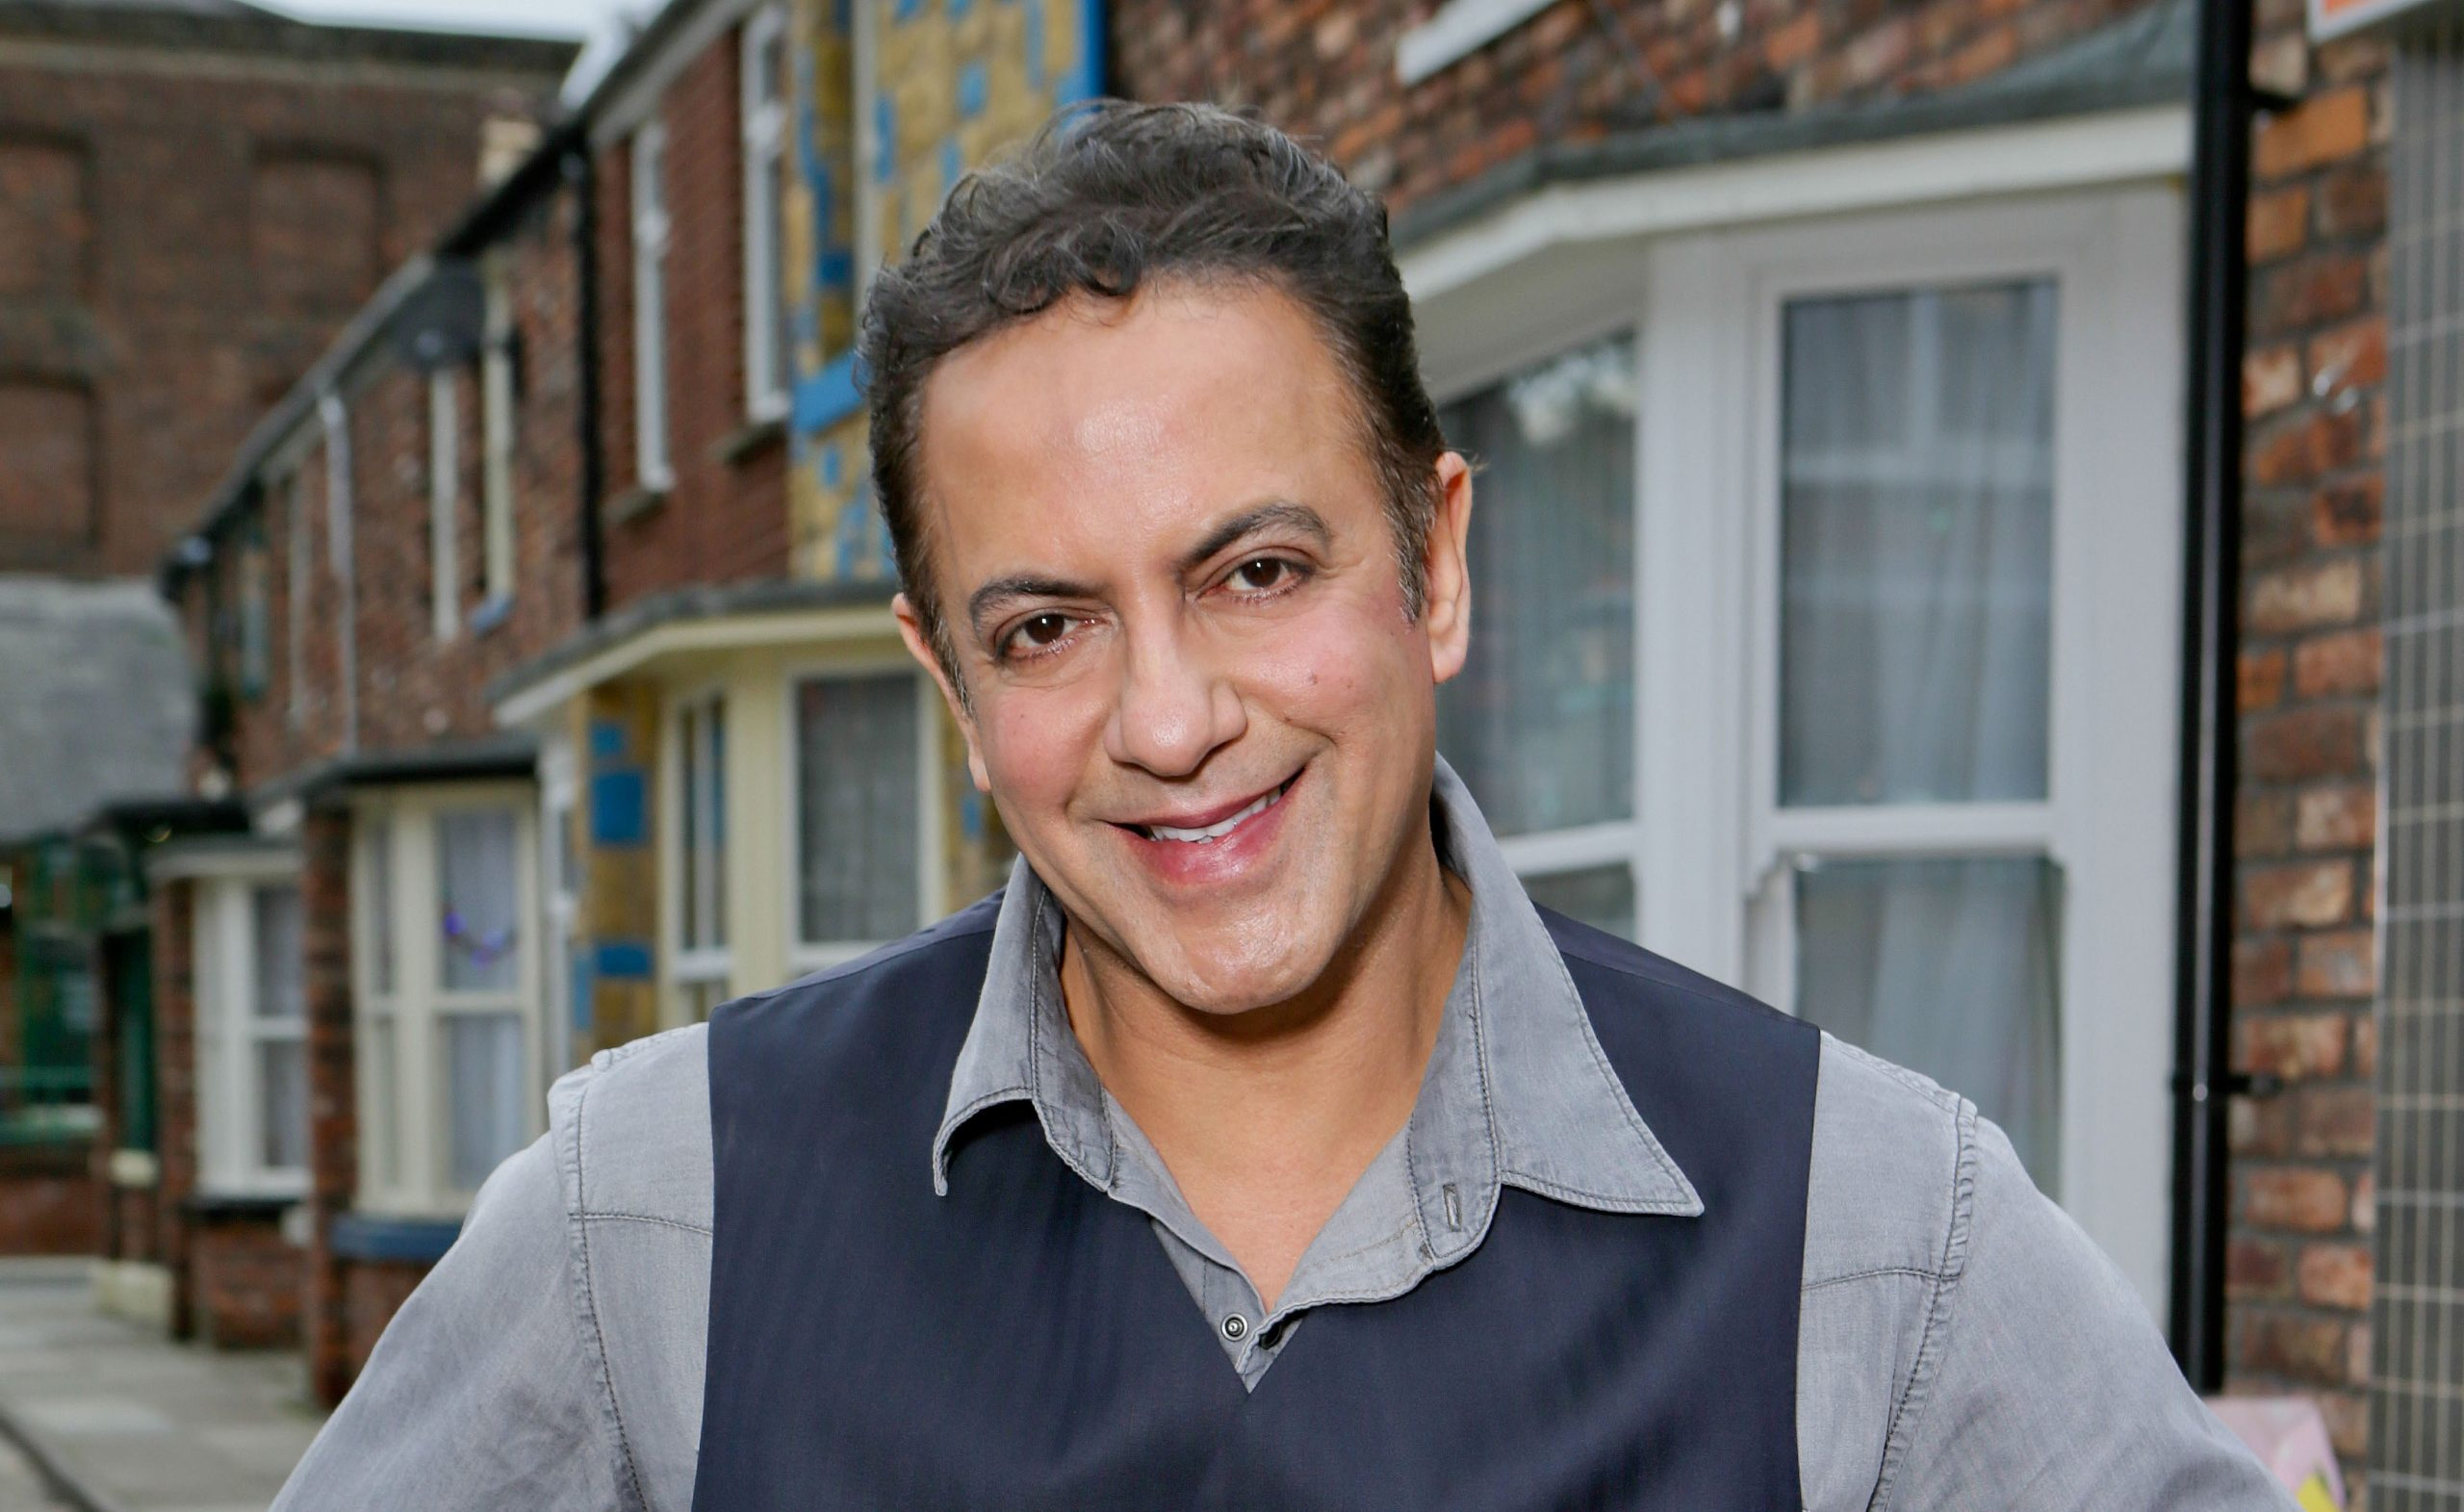 Coronation Street: How many children does Dev Alahan have?